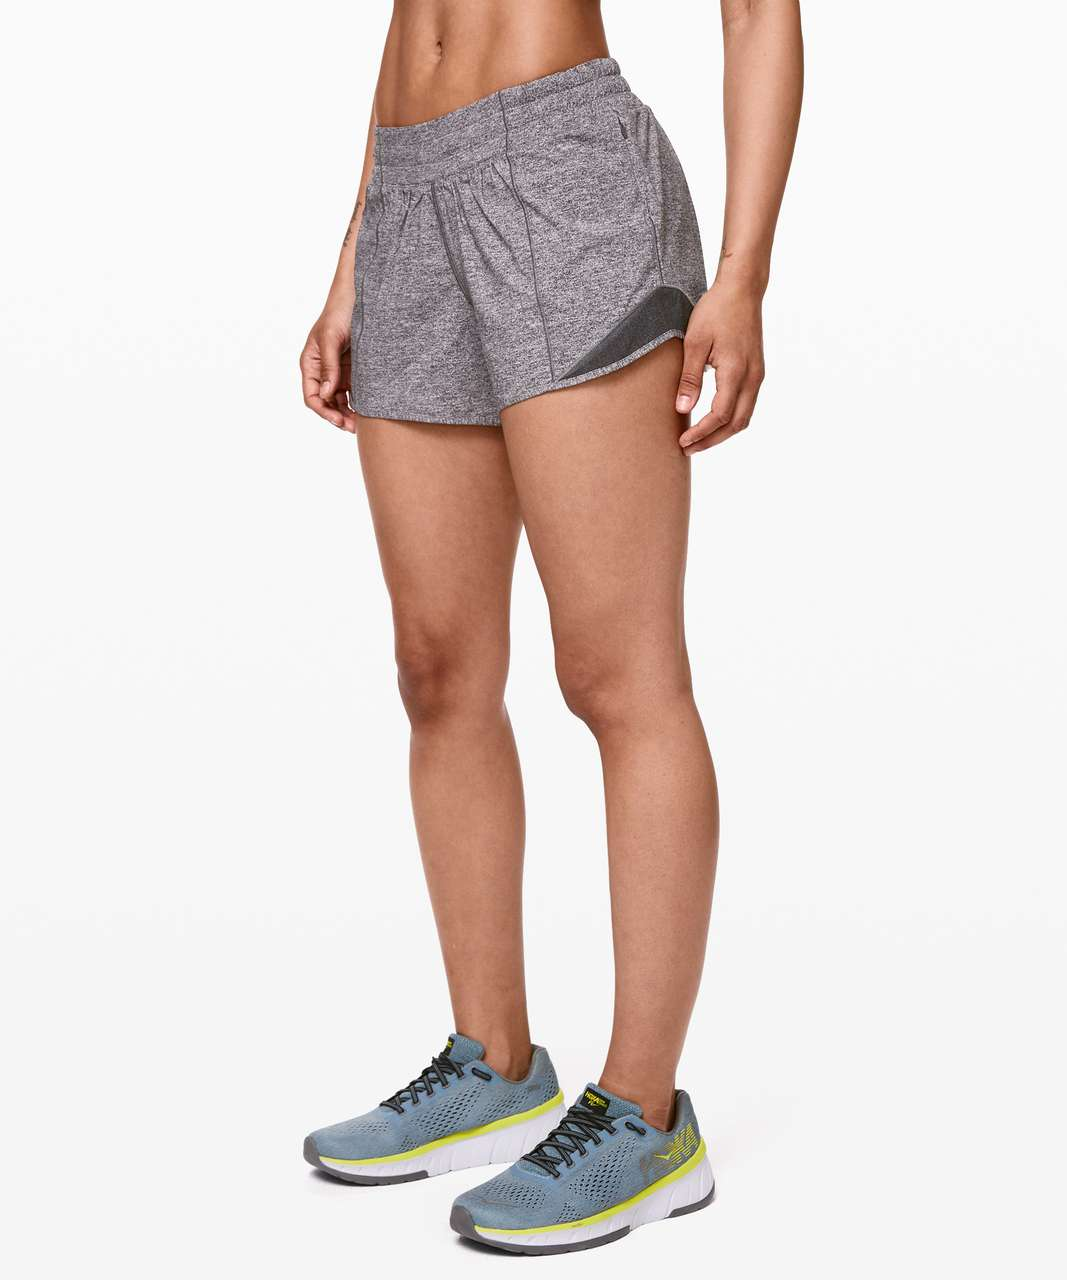 "Lululemon Hotty Hot Short II *Long 4"" - Heather Lux Multi Black / Heathered Black"